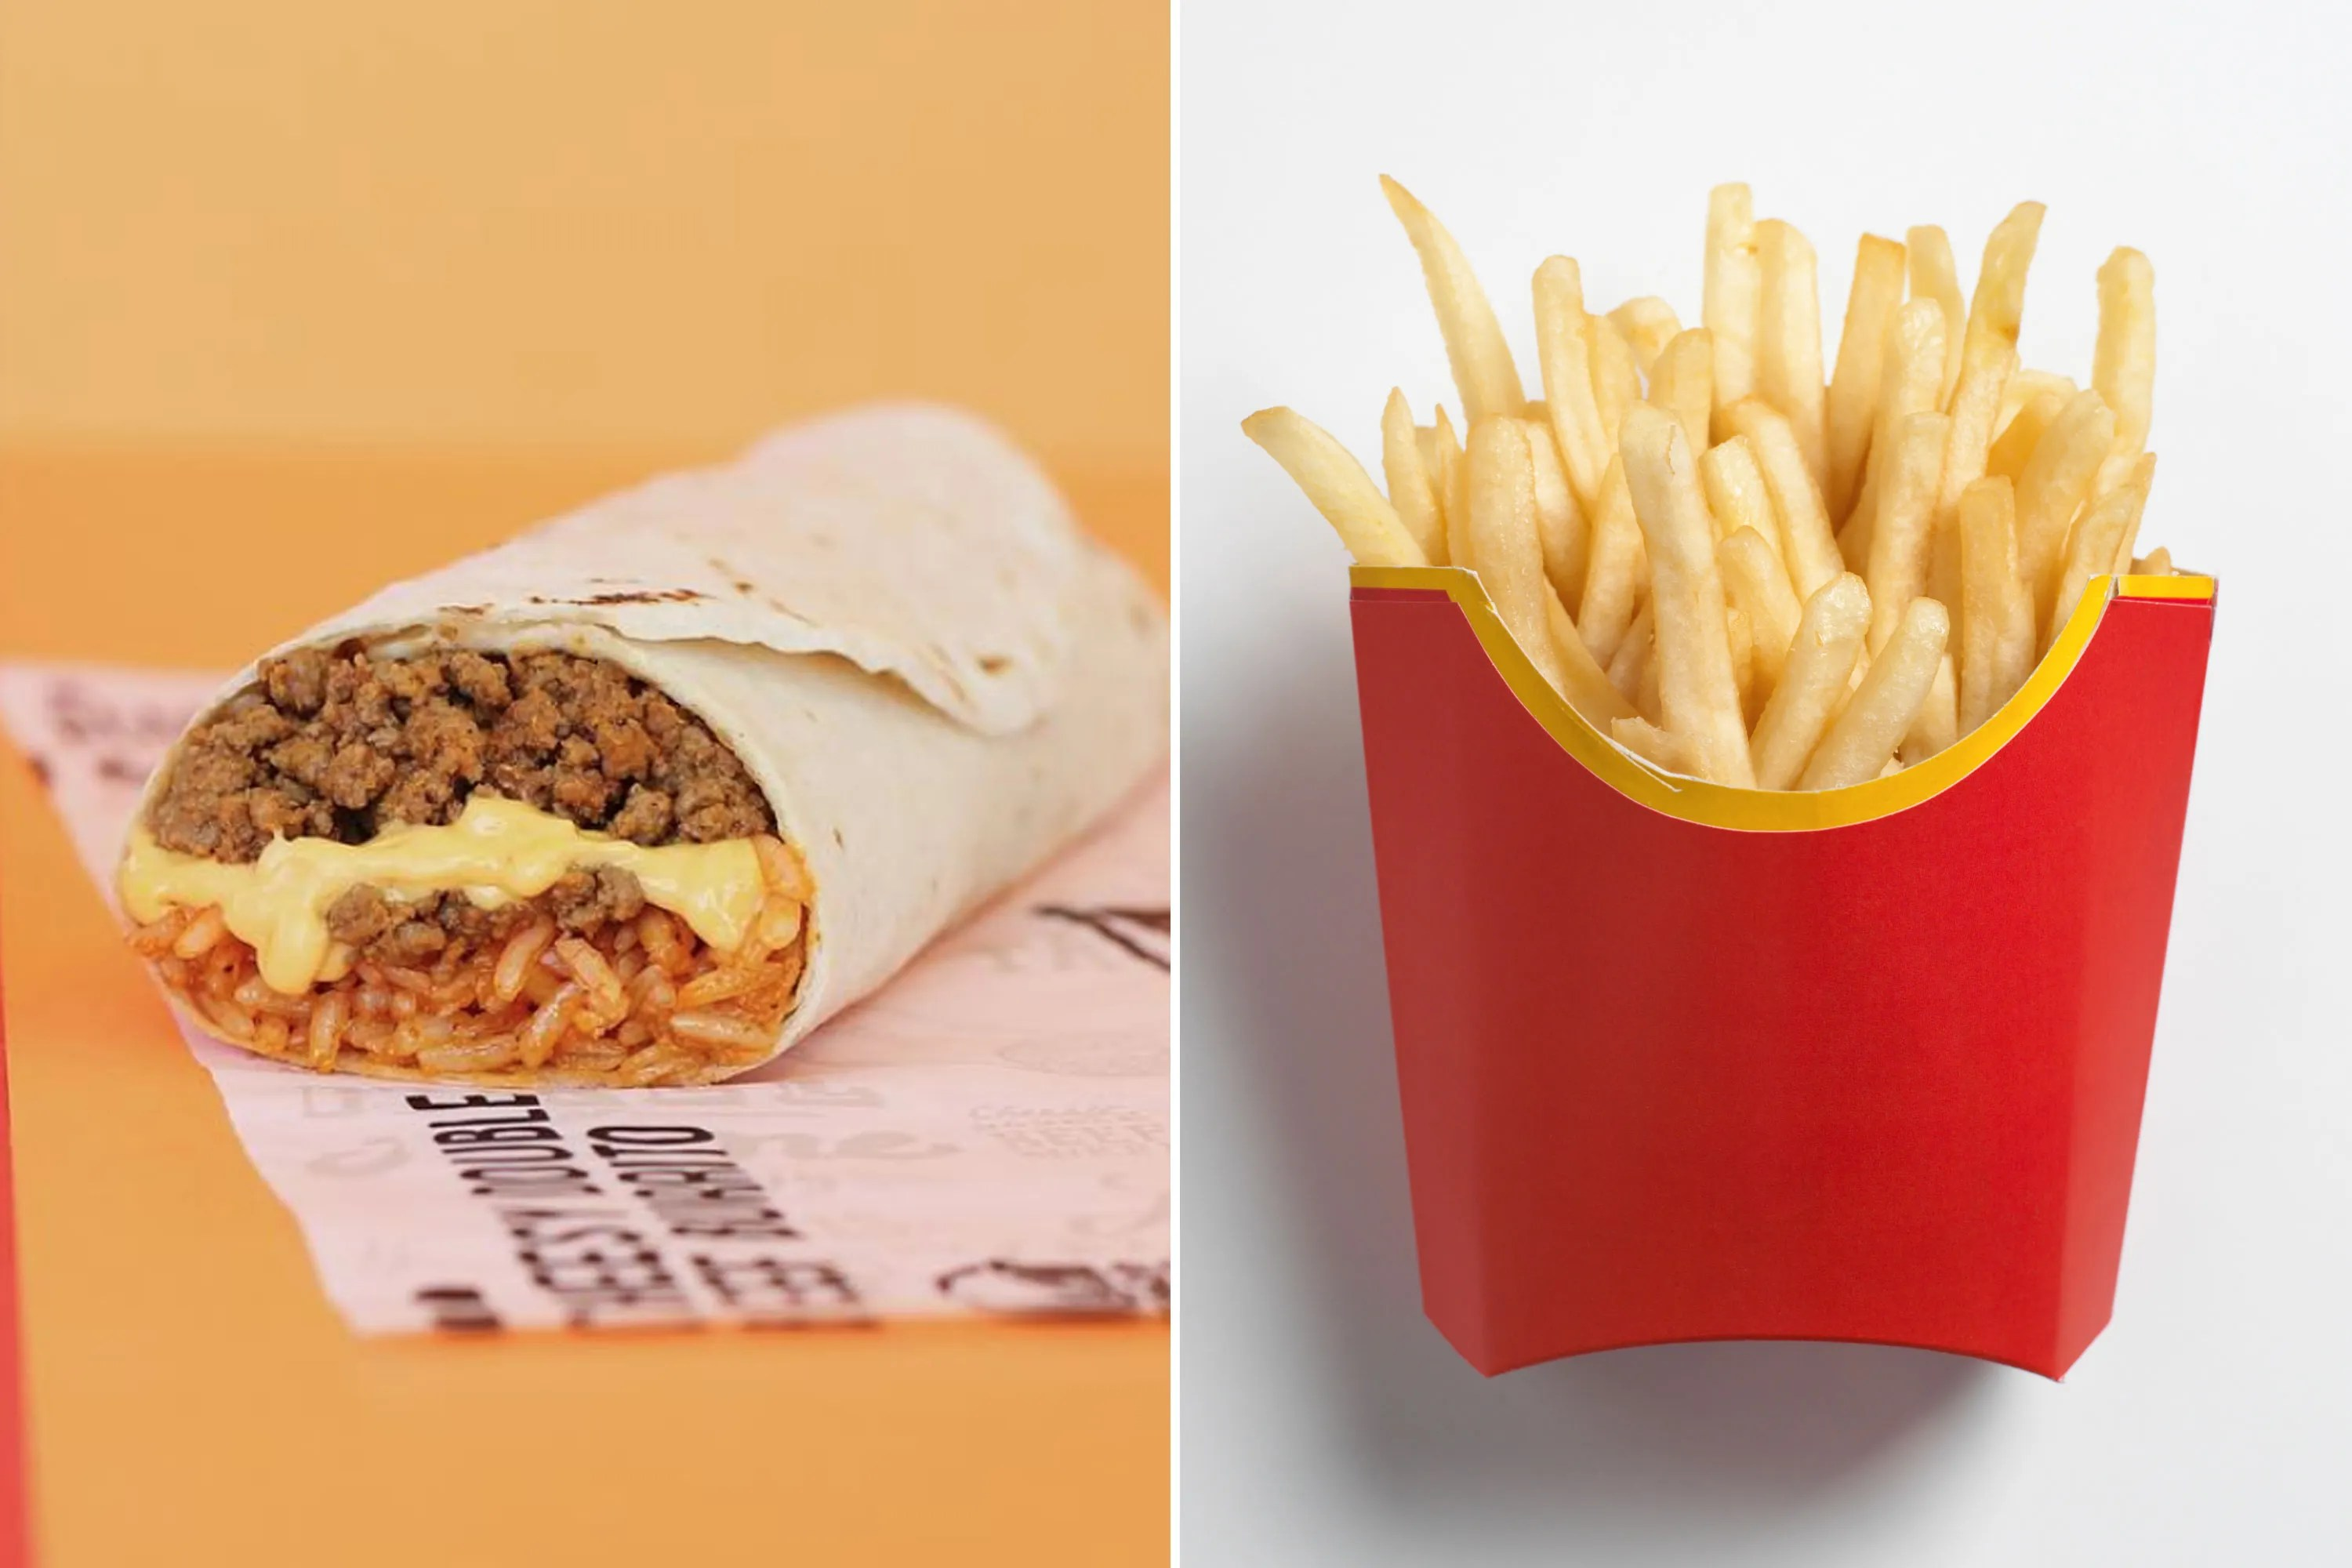 Witching Taco Bell Is Testing A Loaded Burrito Teen Vogue Nacho Fries Box Discontinued Nacho Fries Box Taco Bell Nutrition nice food Nacho Fries Box